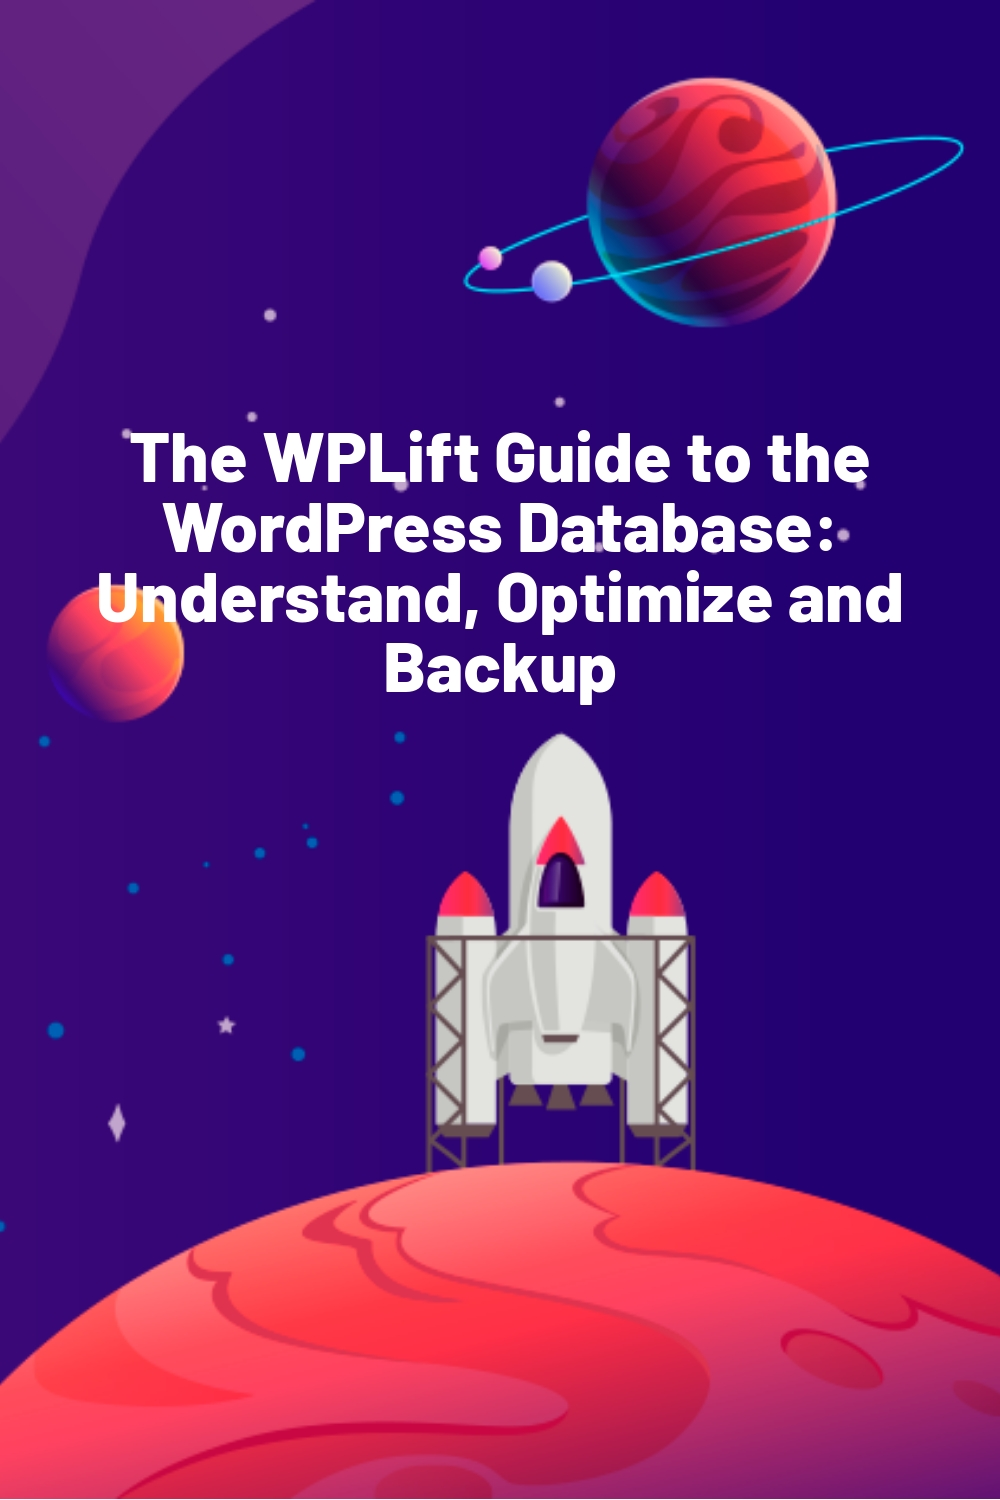 The WPLift Guide to the WordPress Database: Understand, Optimize and Backup